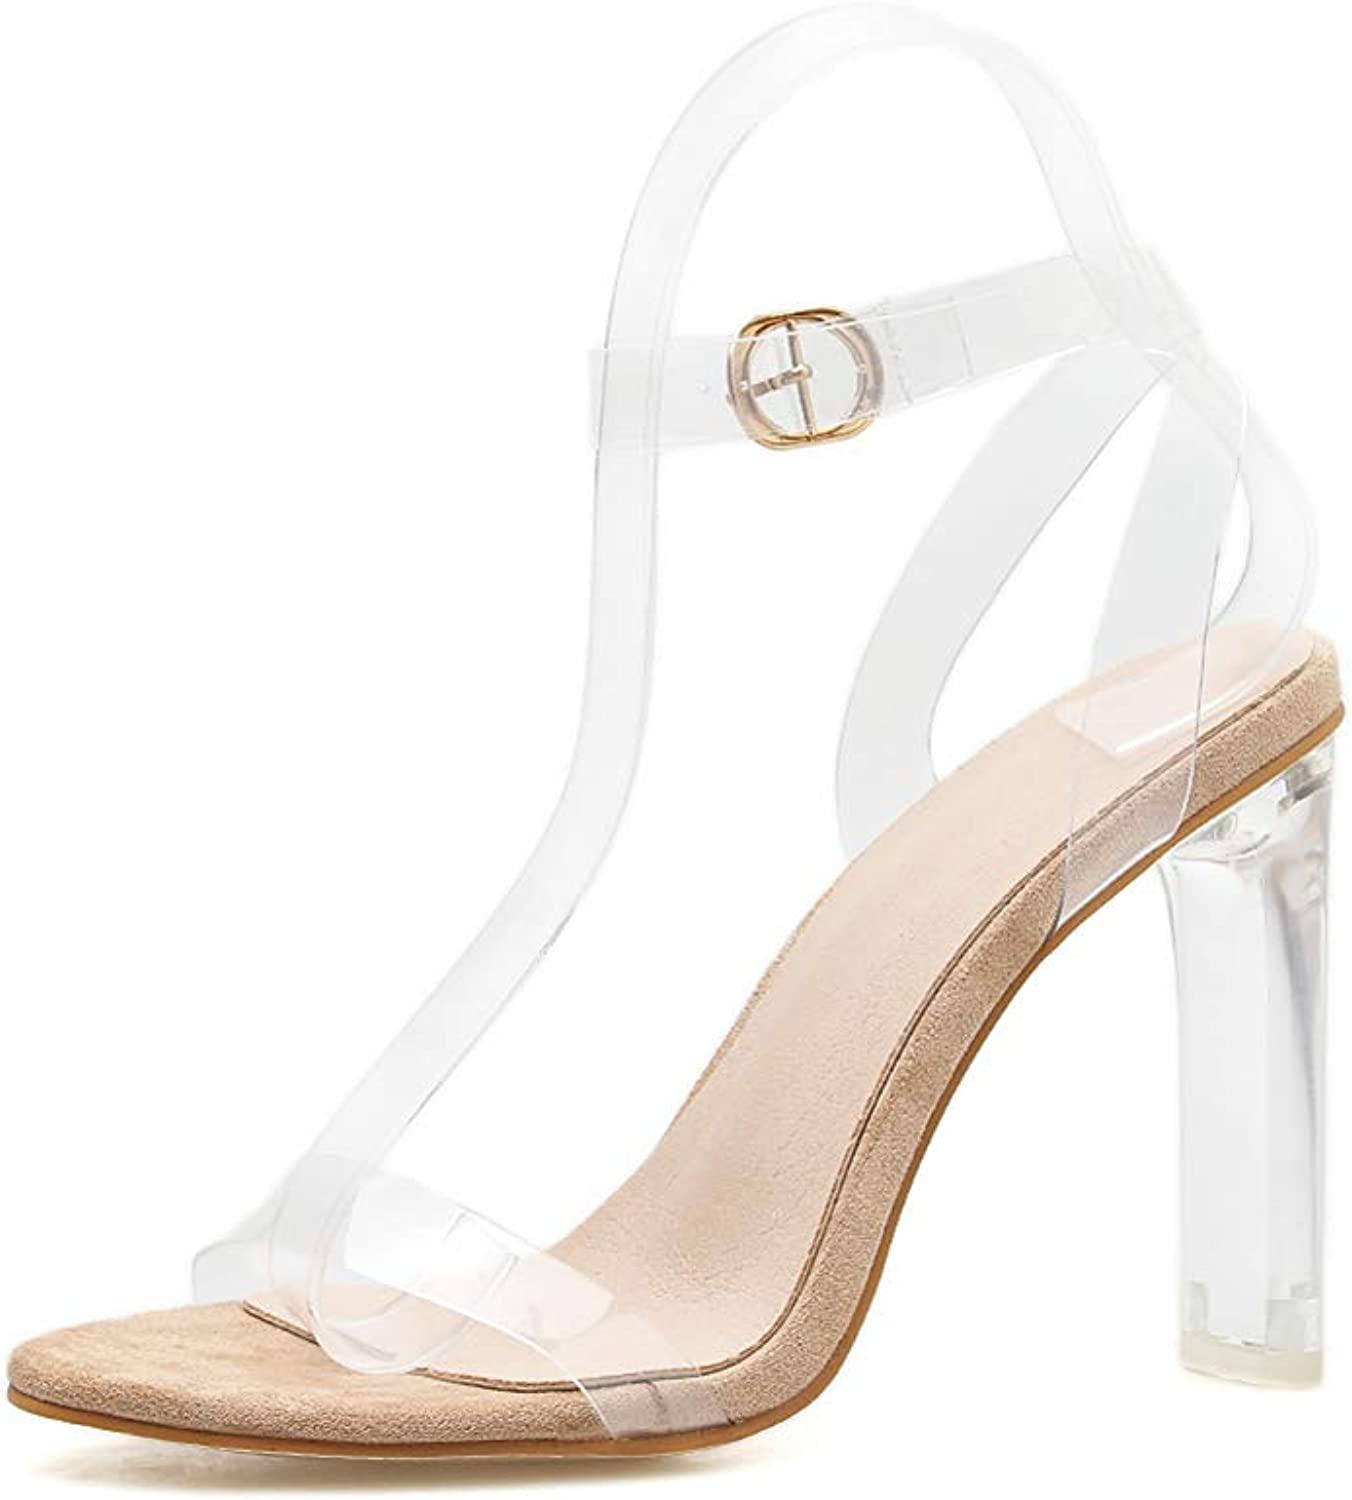 Women's Clear Open Toe High Heels Ankle Strap Adjustable Buckle Block Chunky Perspex High Heel Transparent Dress Sandals,Apricot,39